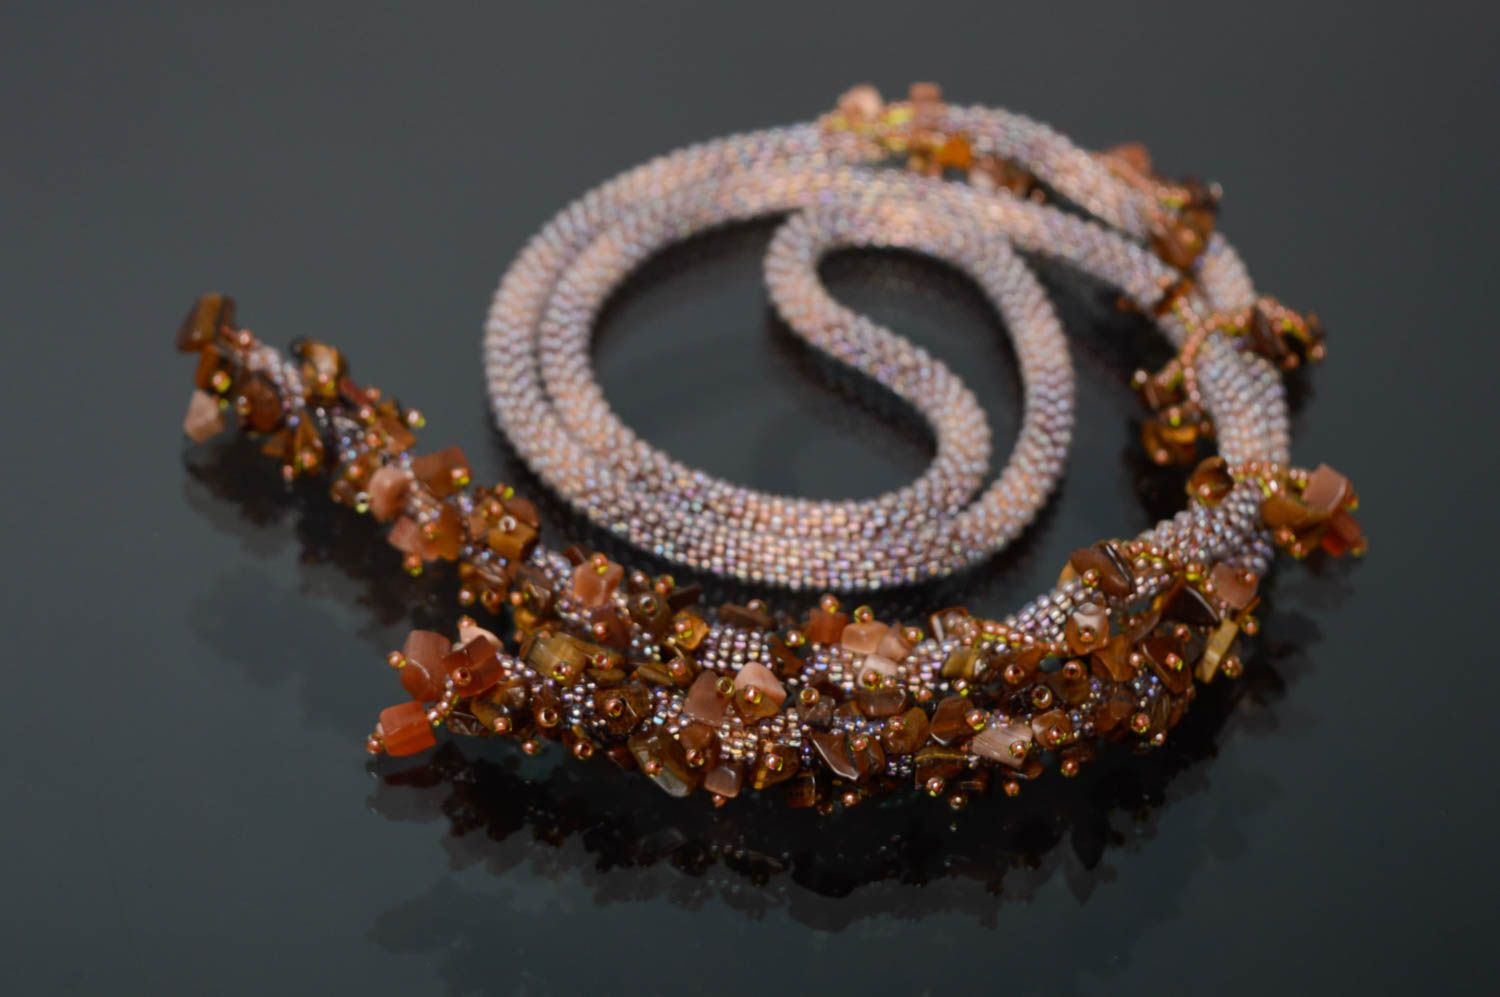 Beaded lariat necklace with tiger's eye stone photo 1